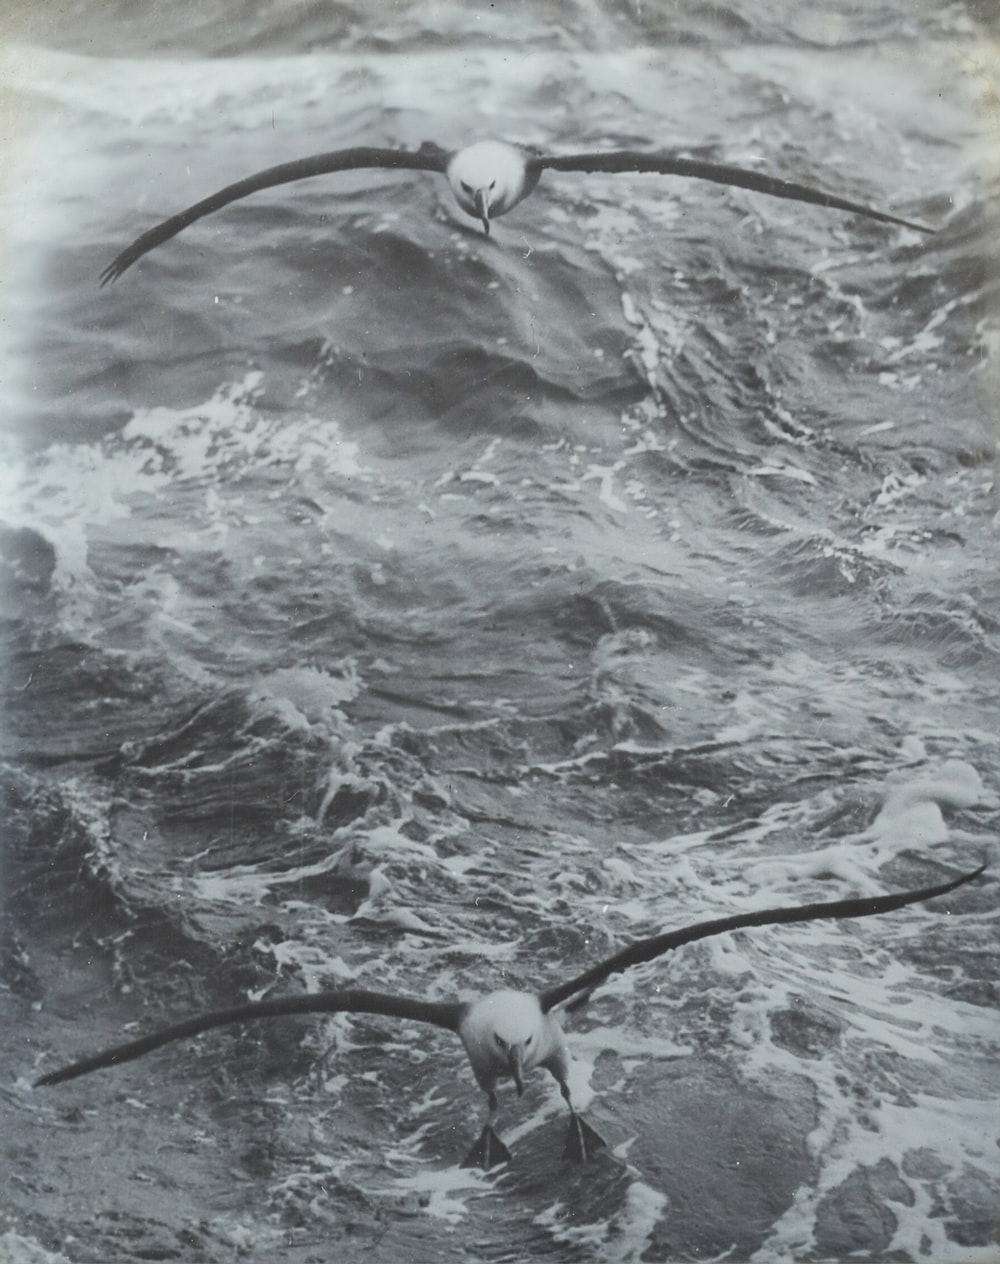 grayscale photo of birds flying above body of water